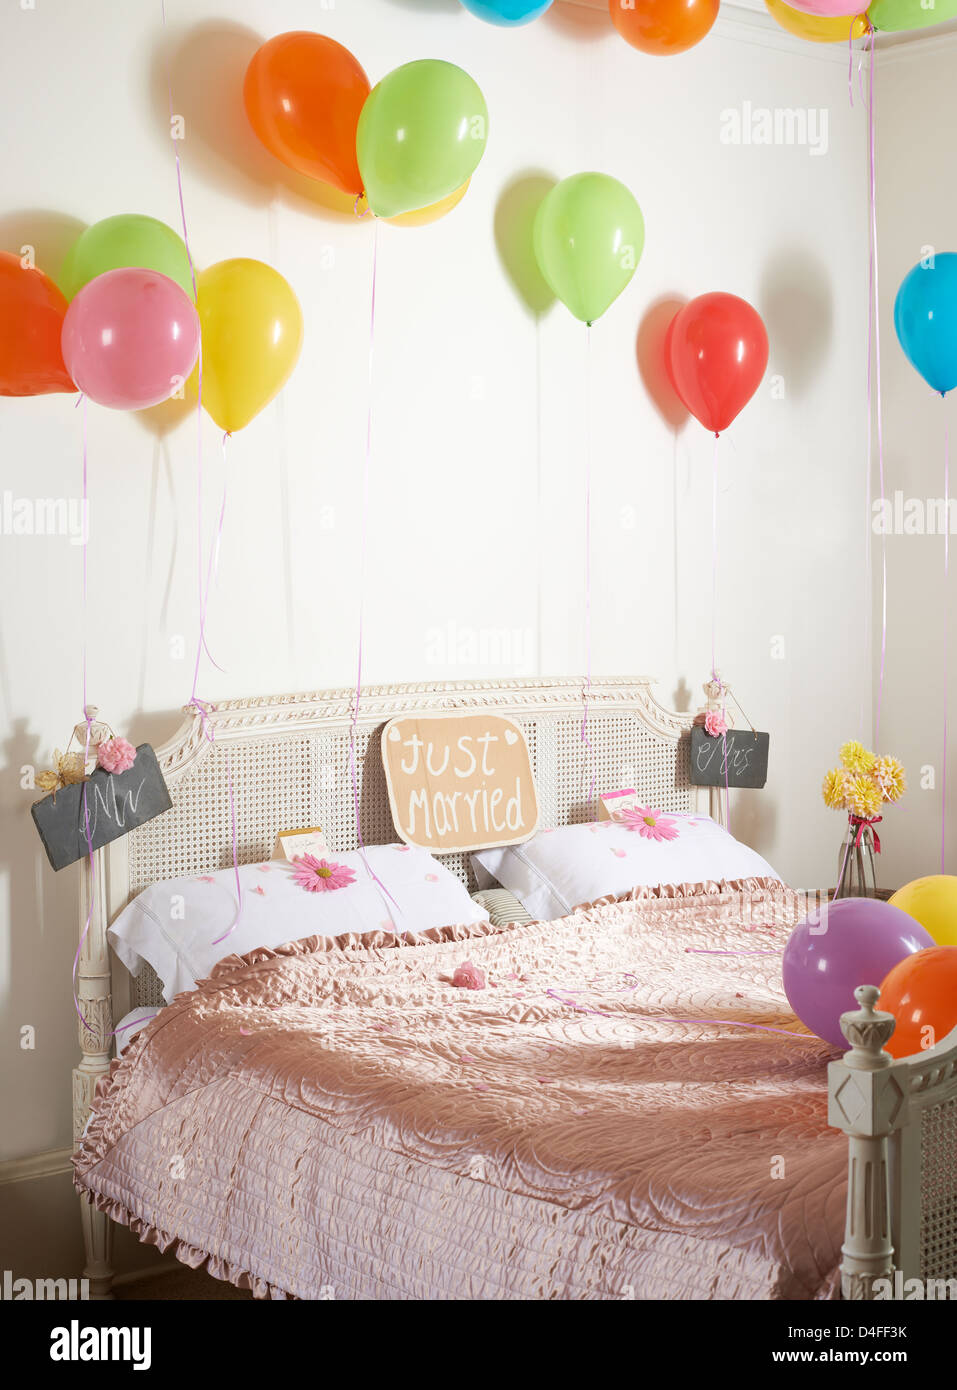 Colorful balloons over marriage bed - Stock Image